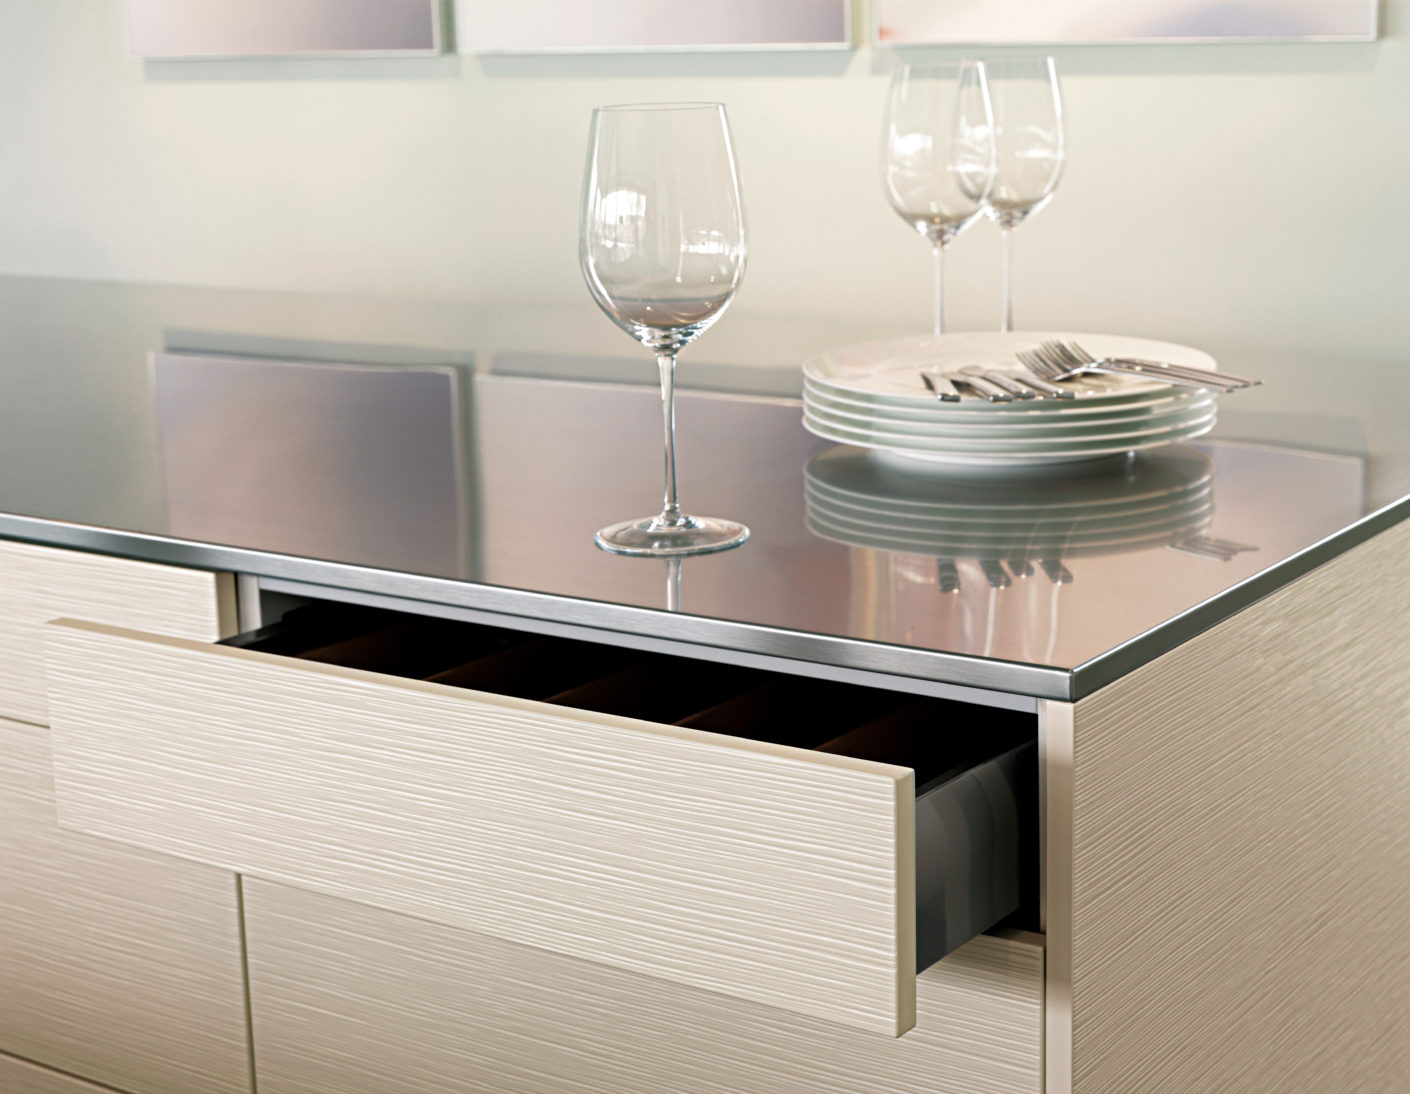 The drawers and cabinets are opened with gentle pressure - handles are not necessary.